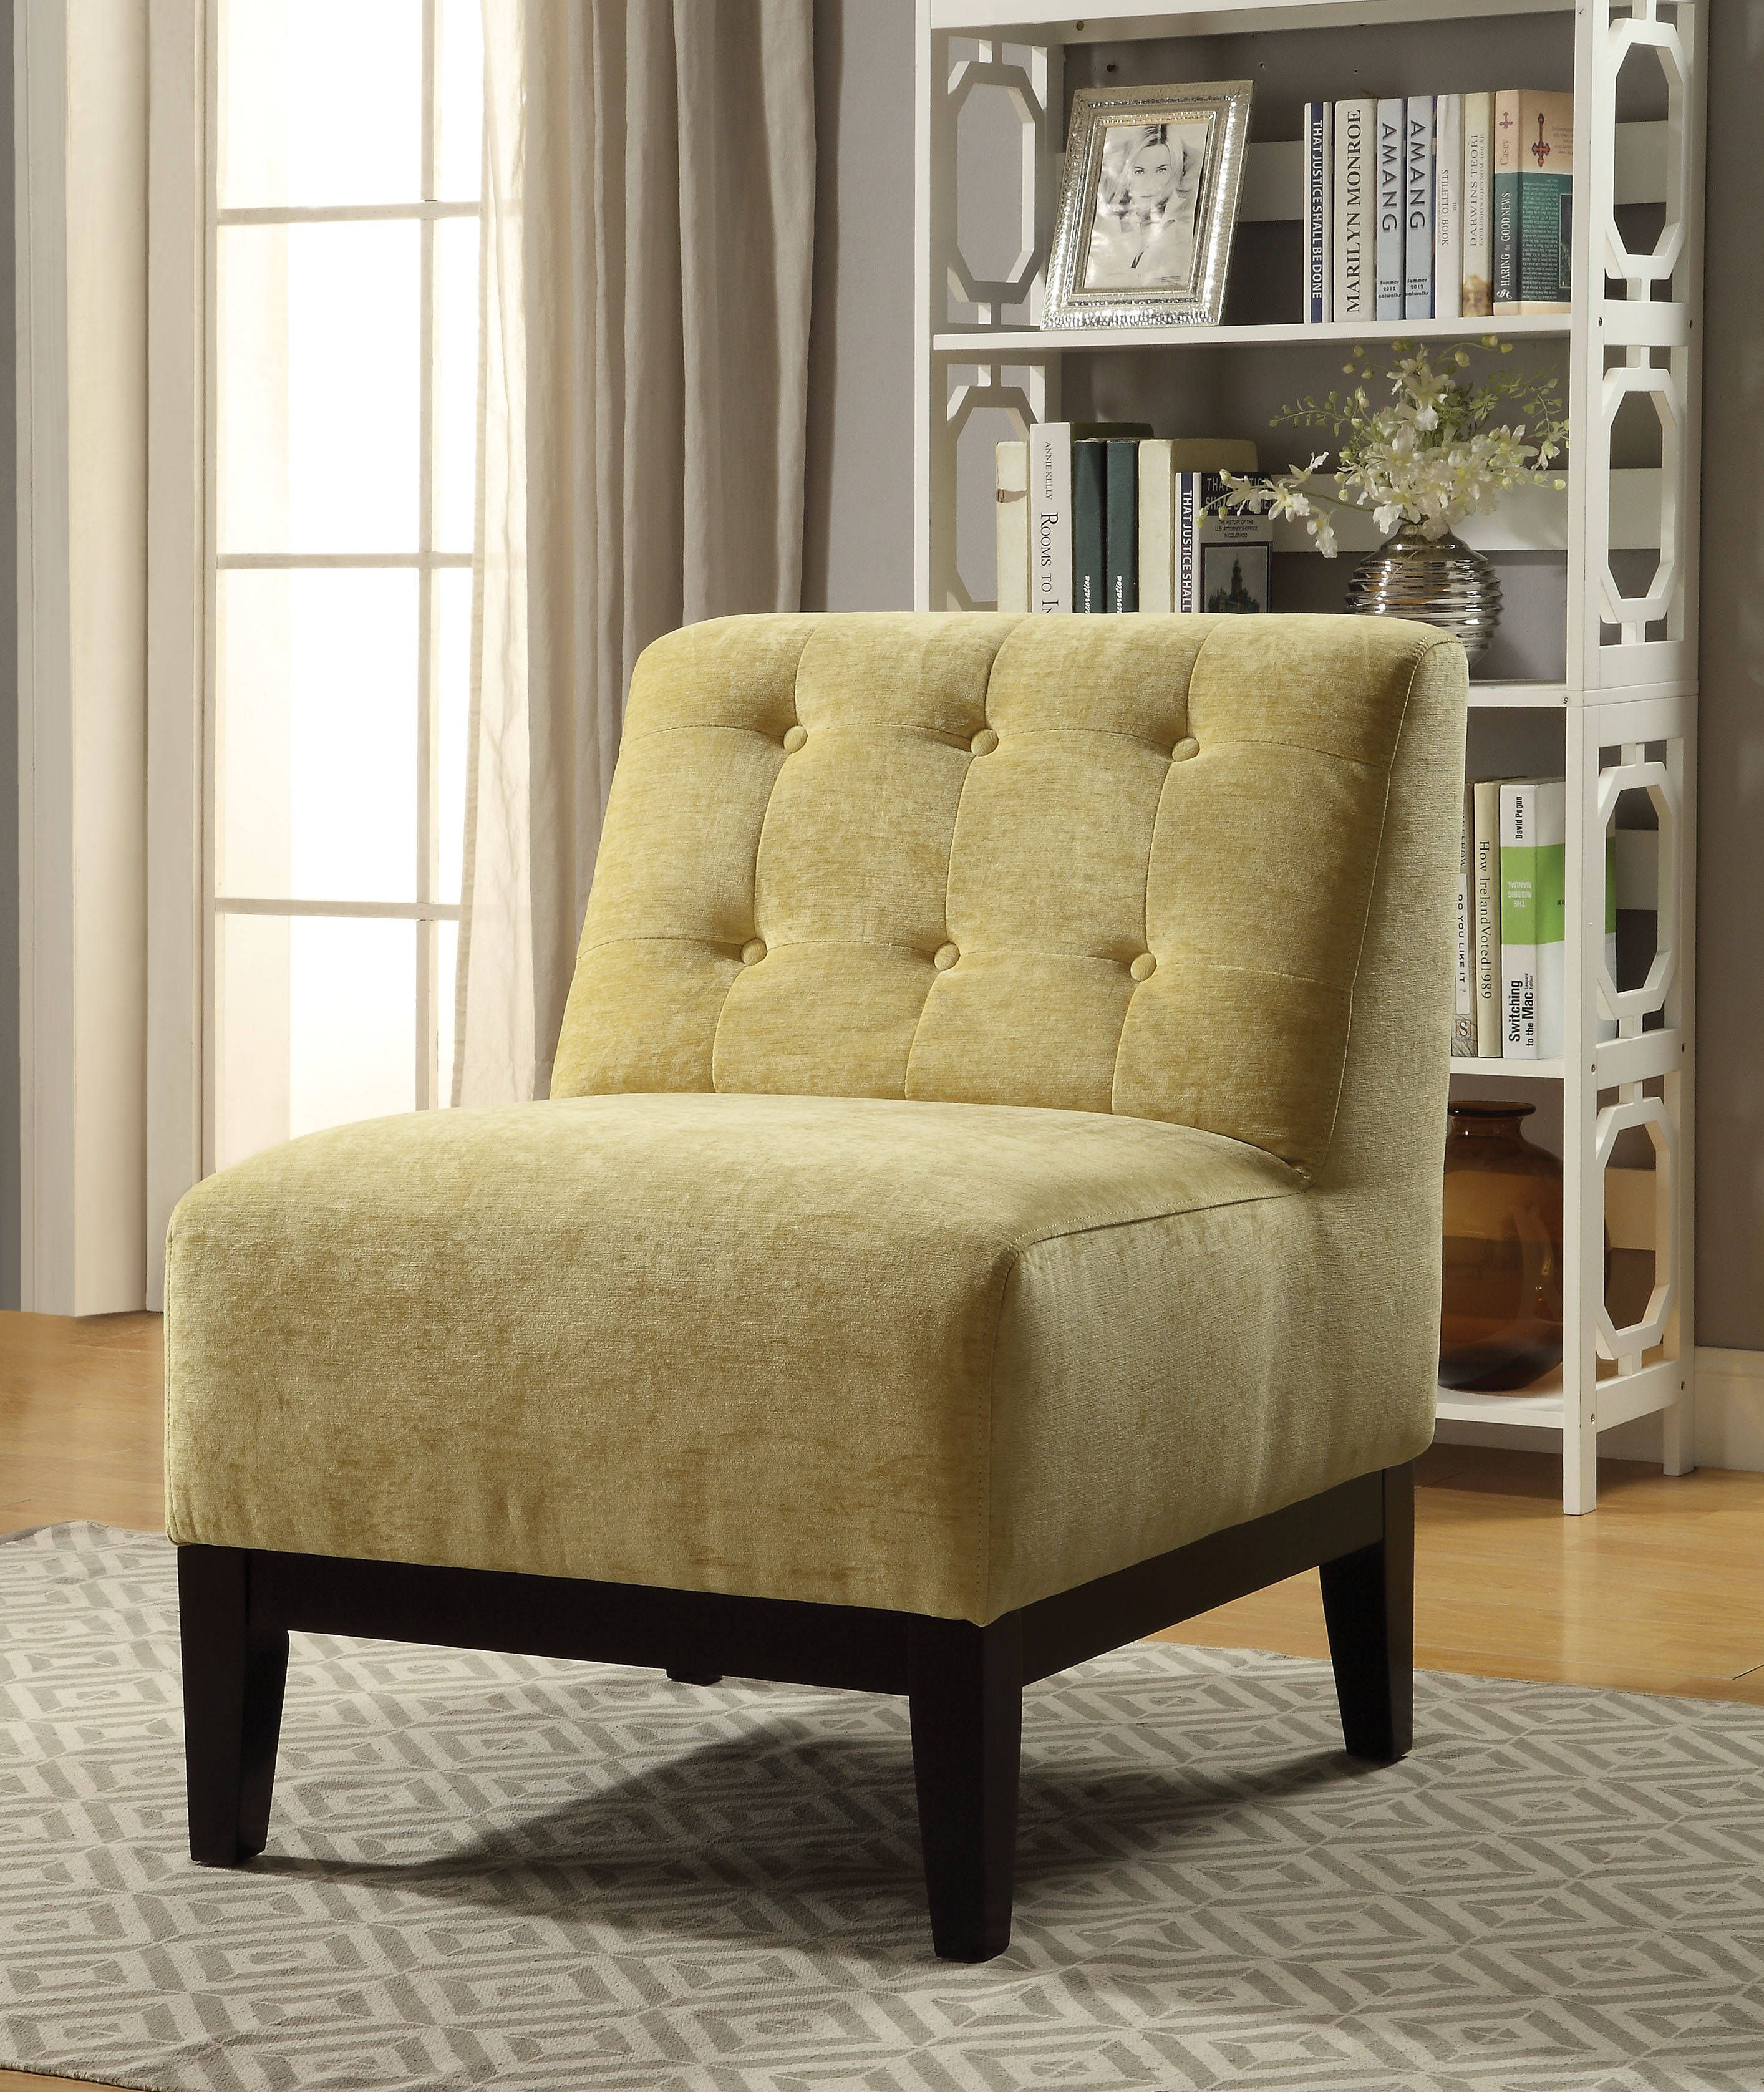 arms mustard wingback inspirations images recliner accent chair color yellow armchair lounge small and sofa grey leather with